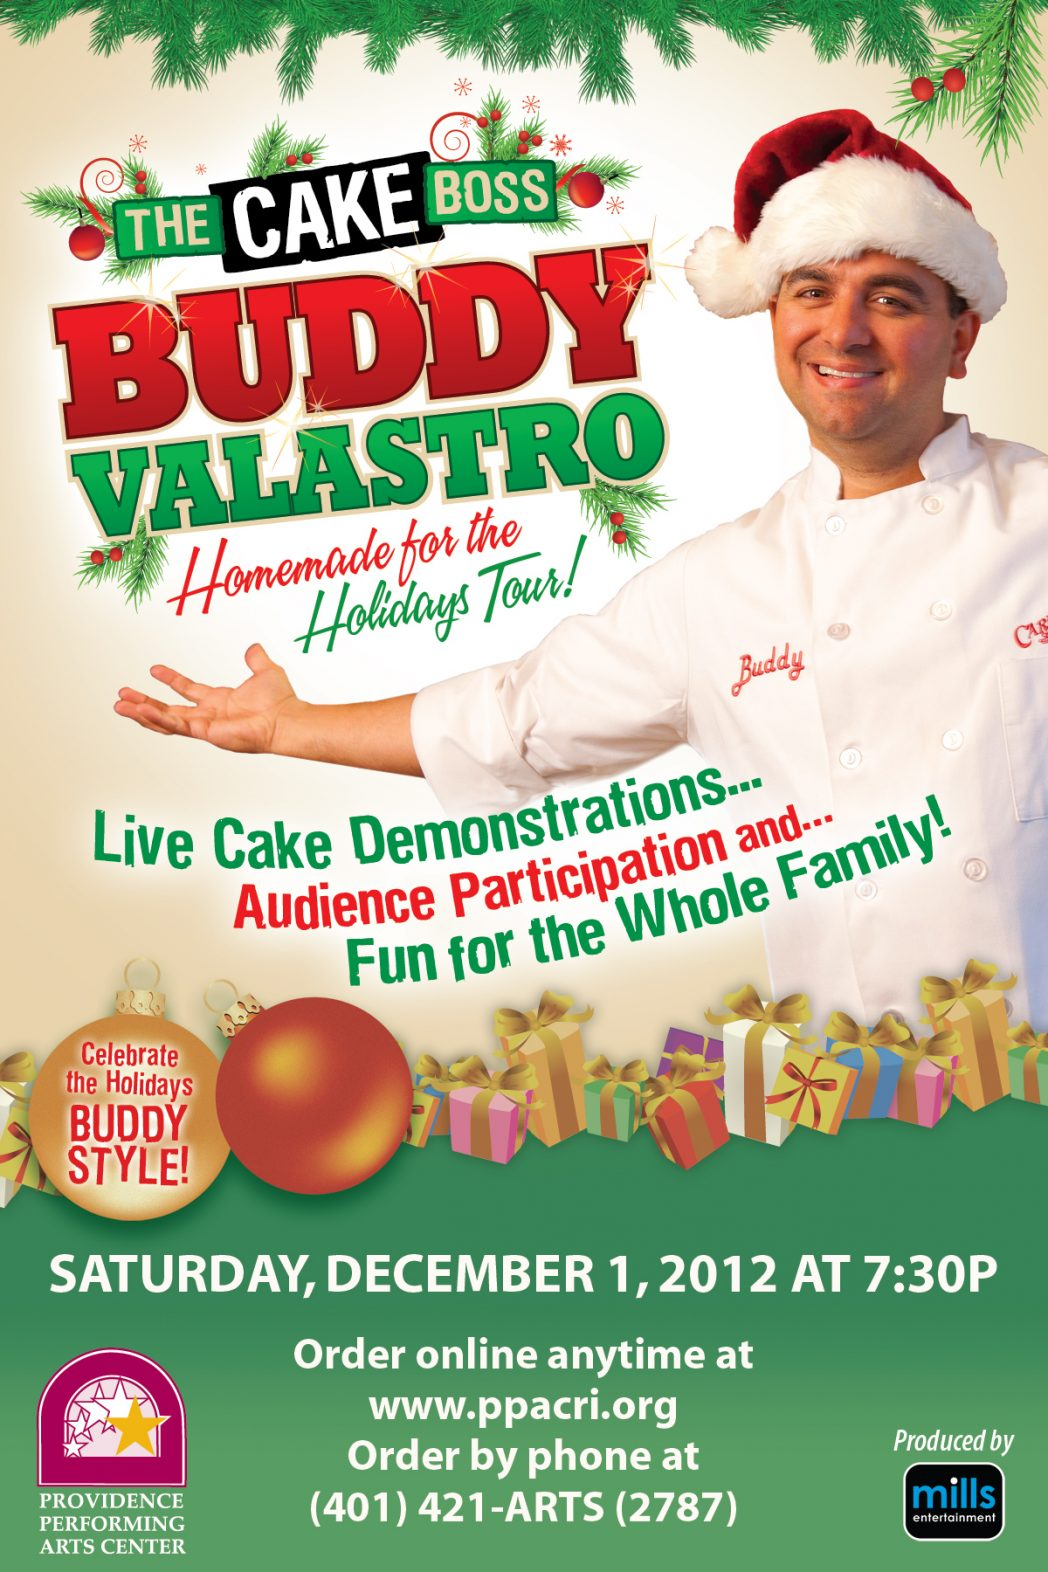 Buddy Valastro Live! (Cake Boss) Homemade for the Holidays Tour at PPAC- 2 pack GIVEAWAY!